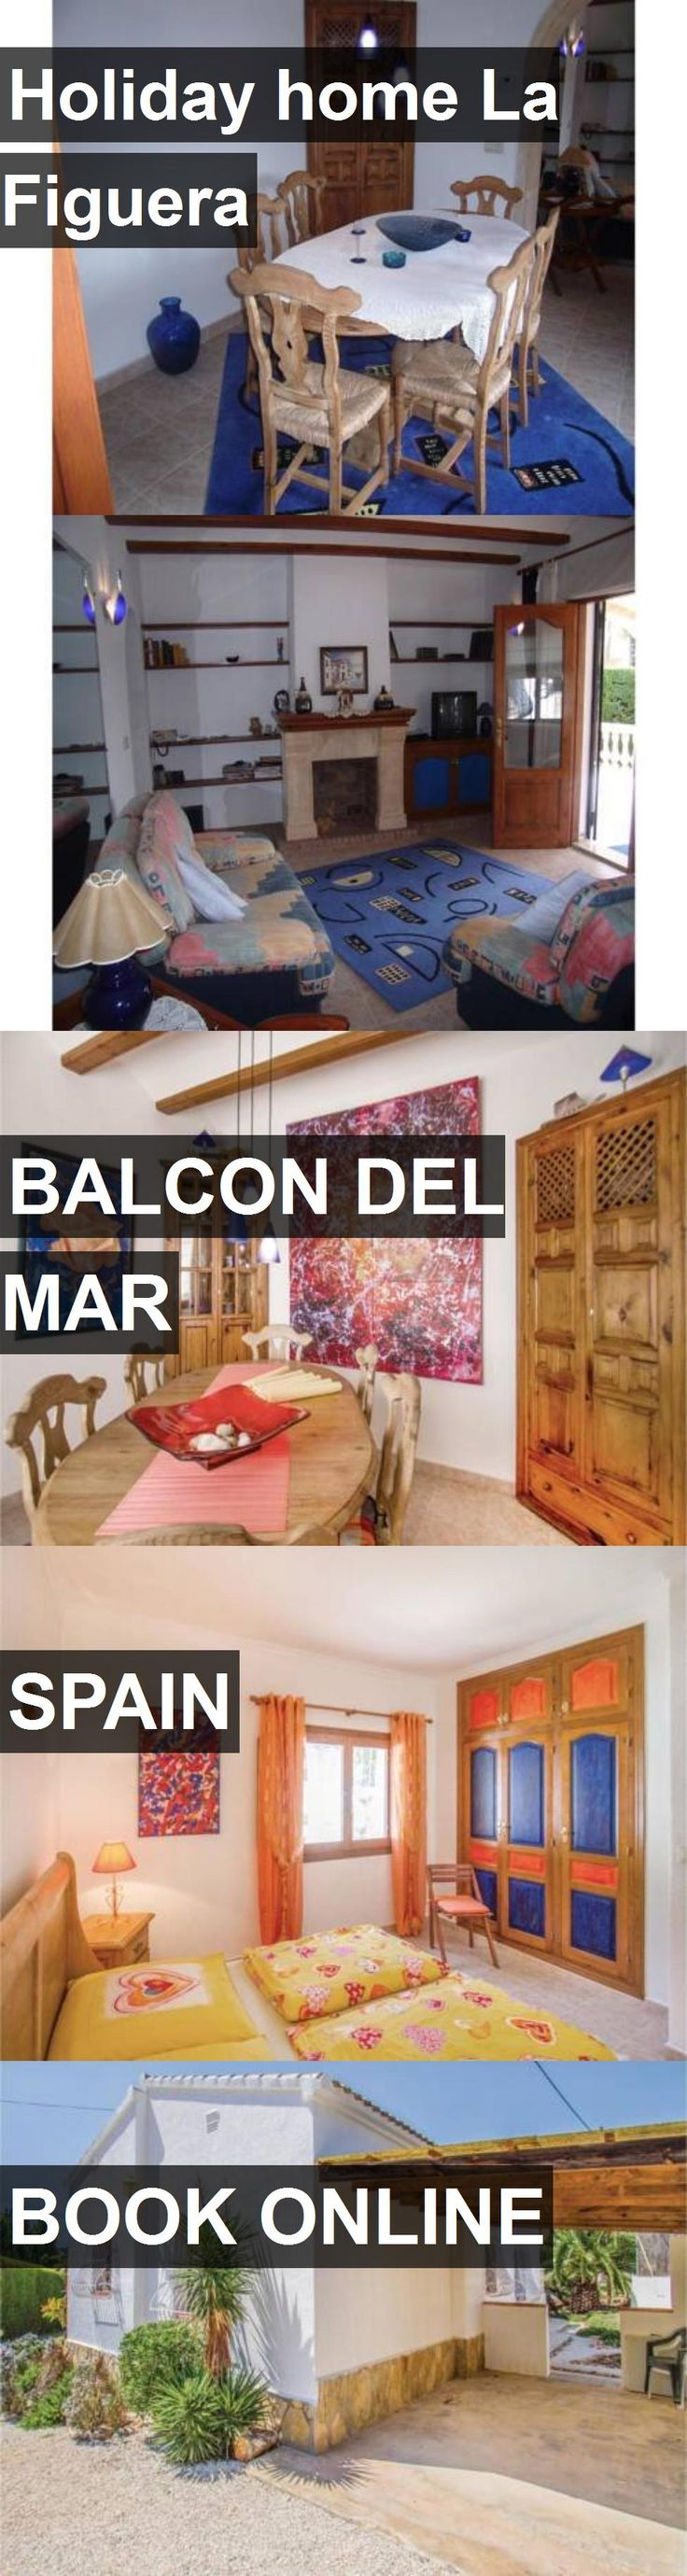 Hotel Holiday home La Figuera in Balcon del Mar, Spain. For more information, photos, reviews and best prices please follow the link. #Spain #BalcondelMar #travel #vacation #hotel